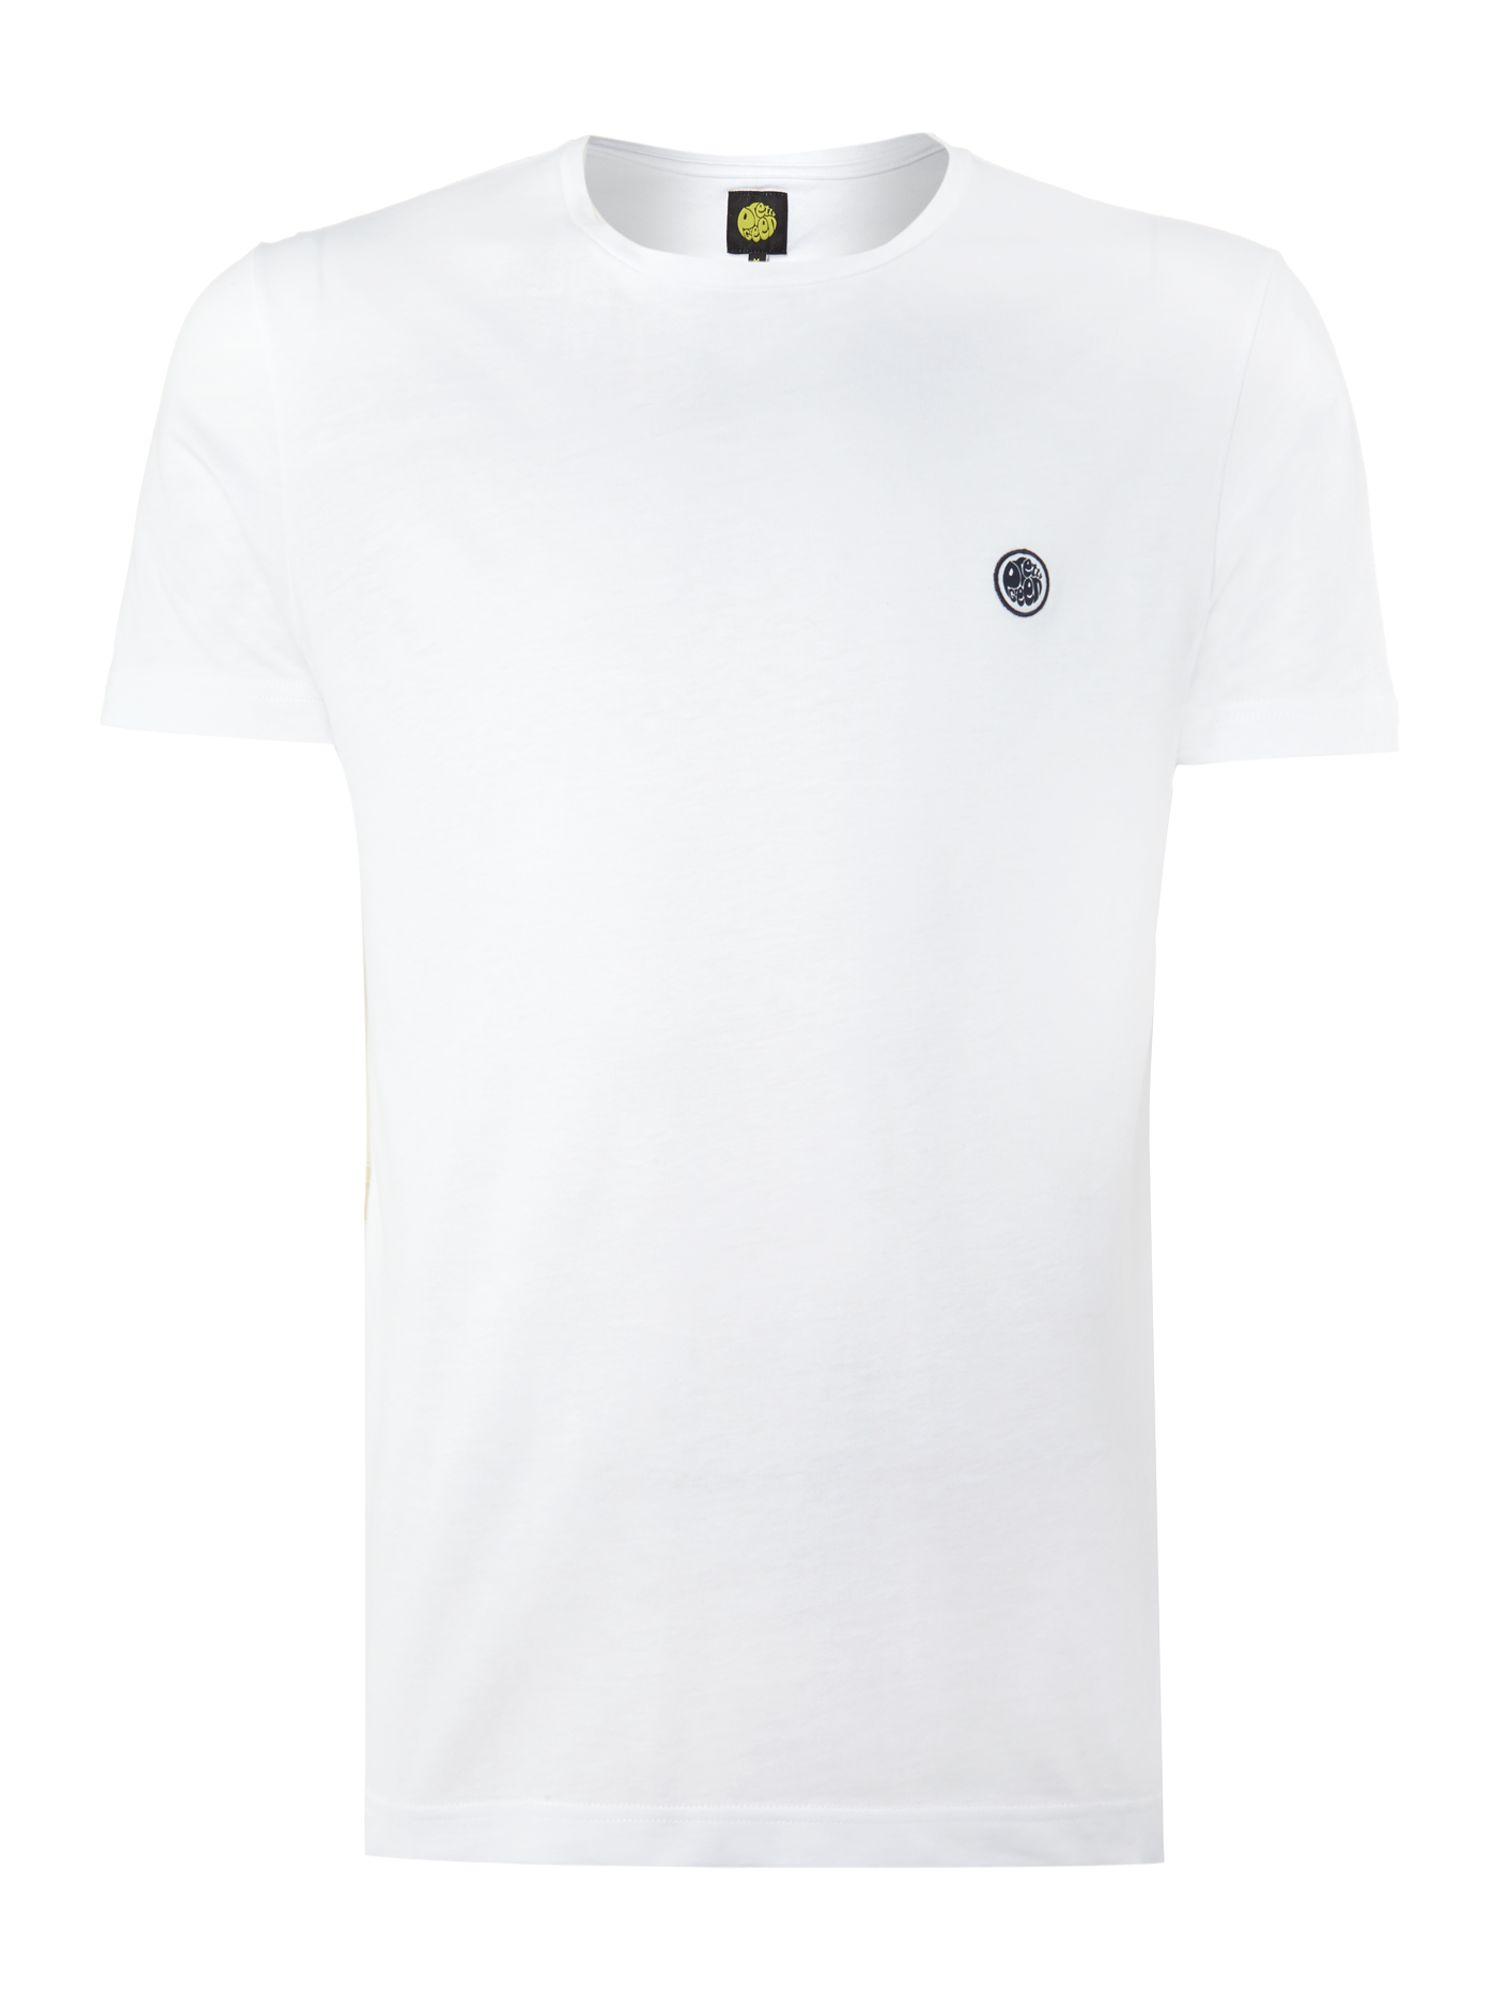 Basic logo t shirt